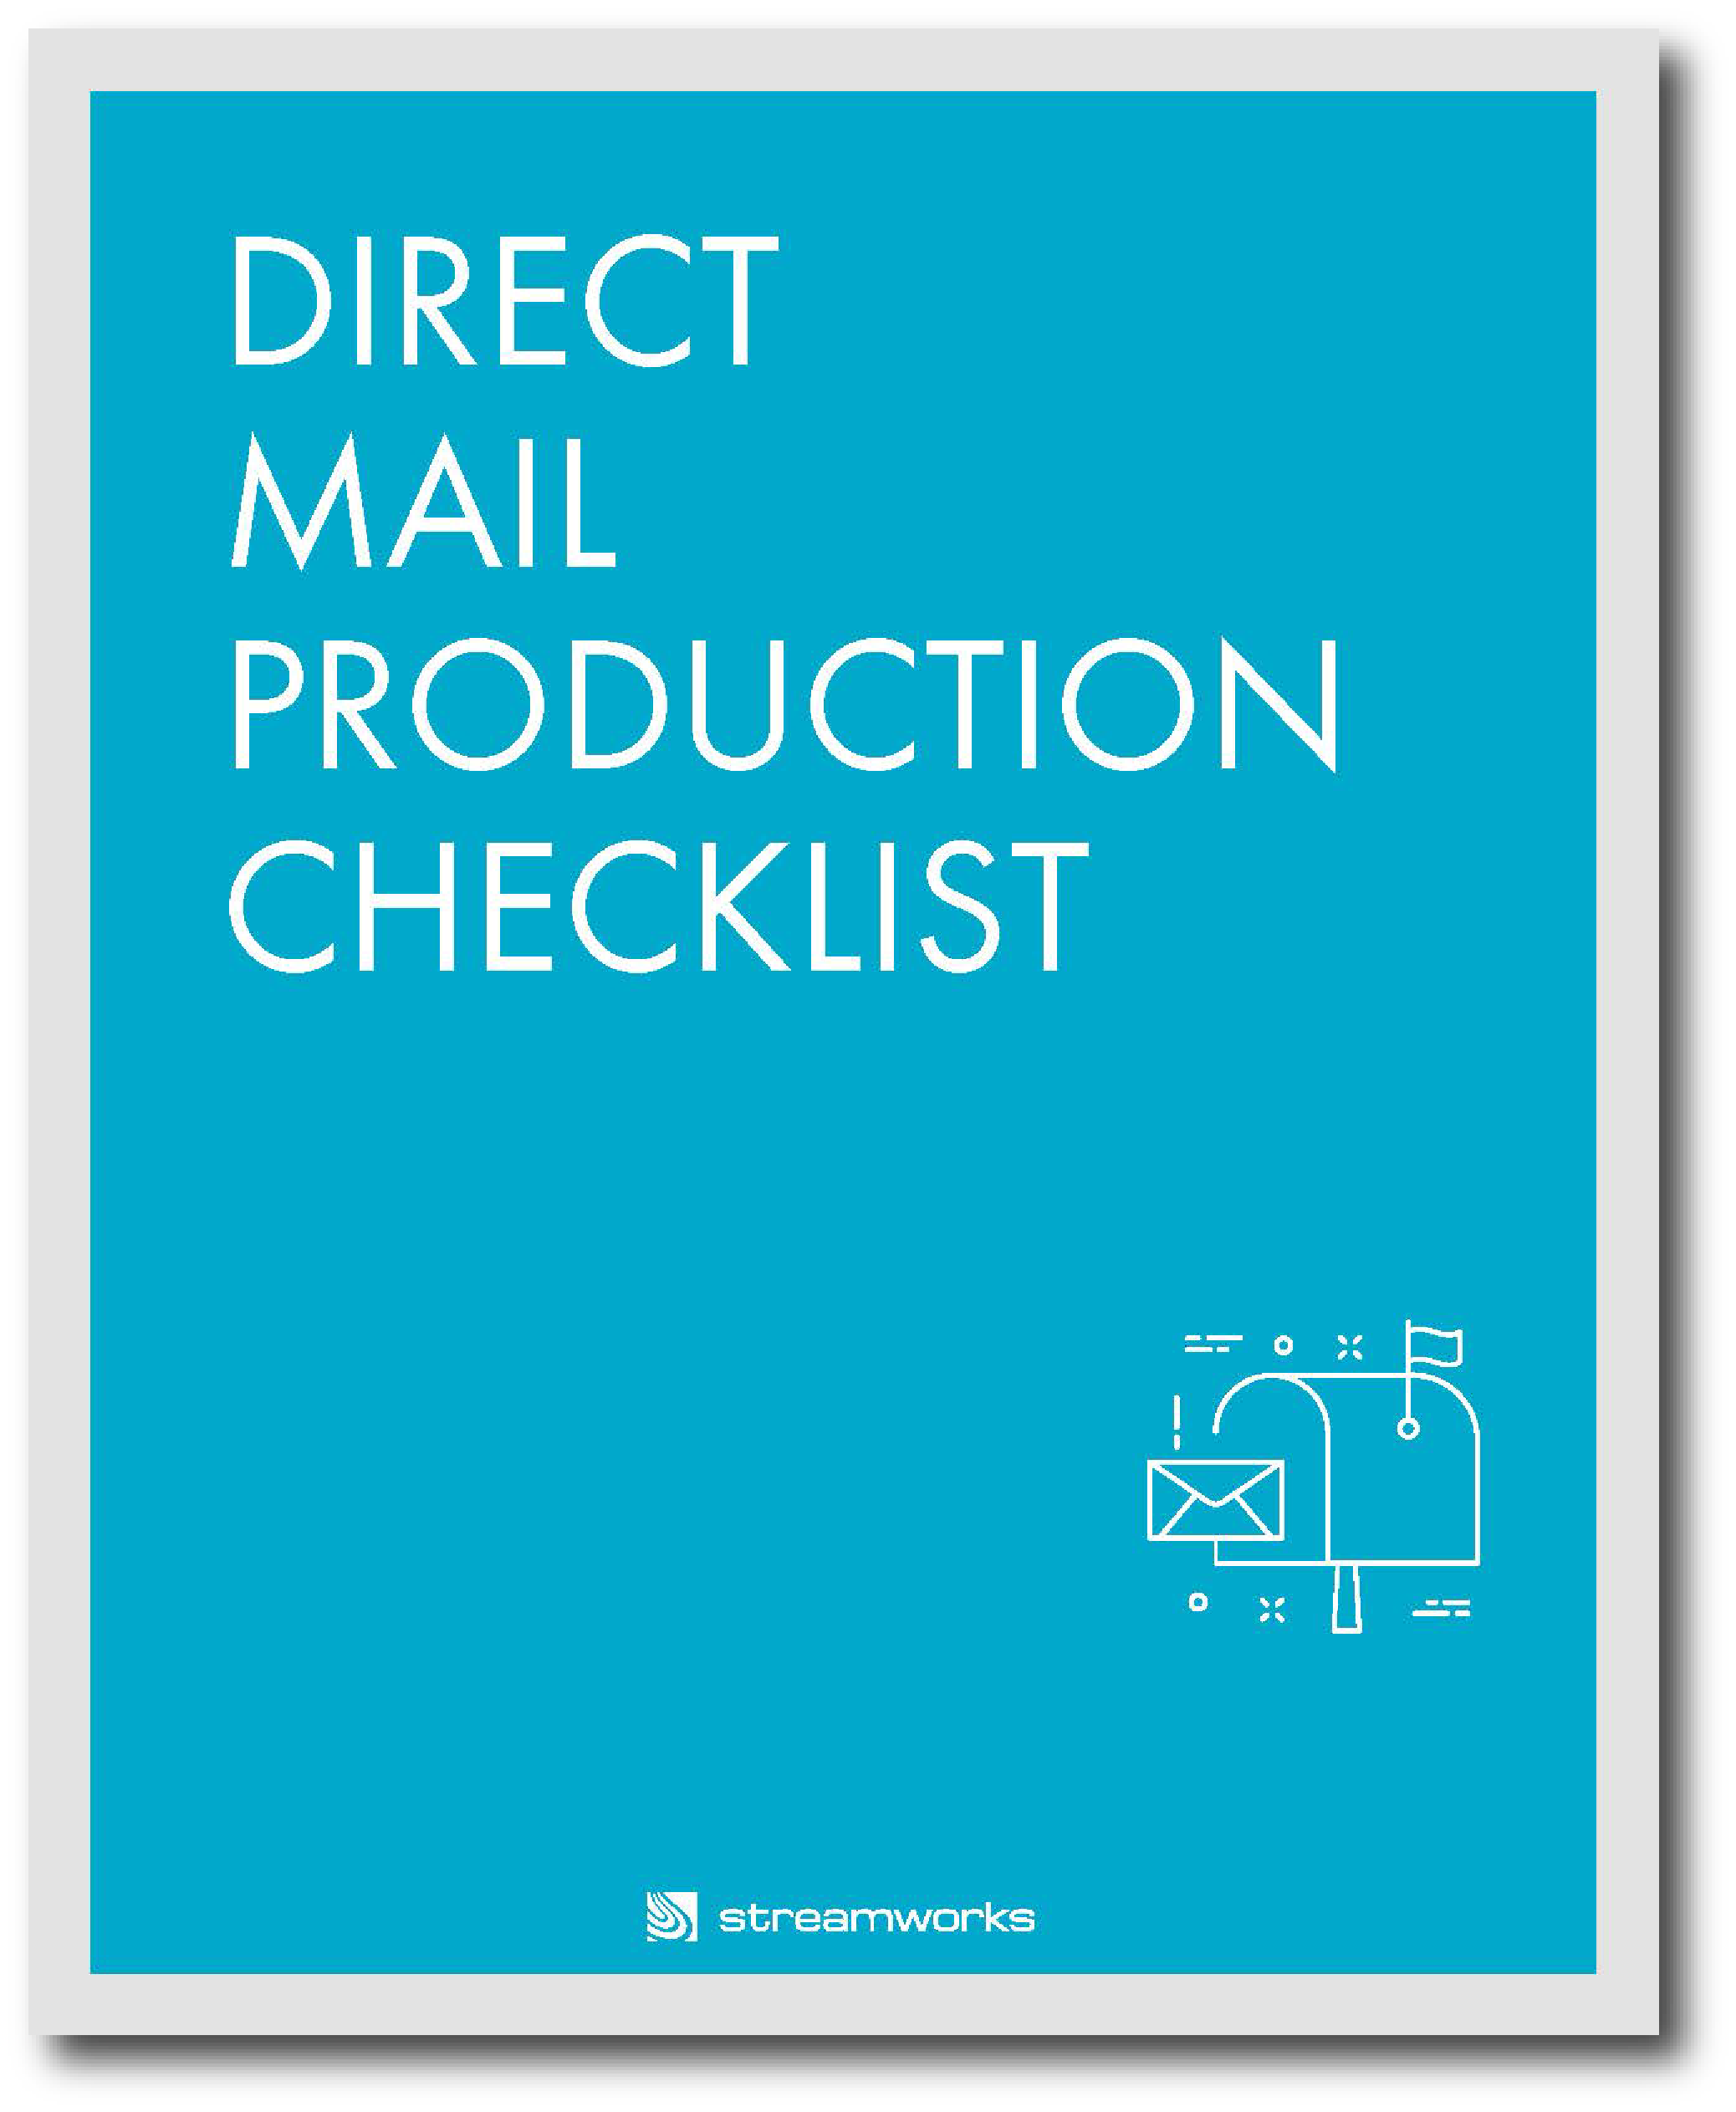 Direct_Mail_Production_Checklist_Page_1.png